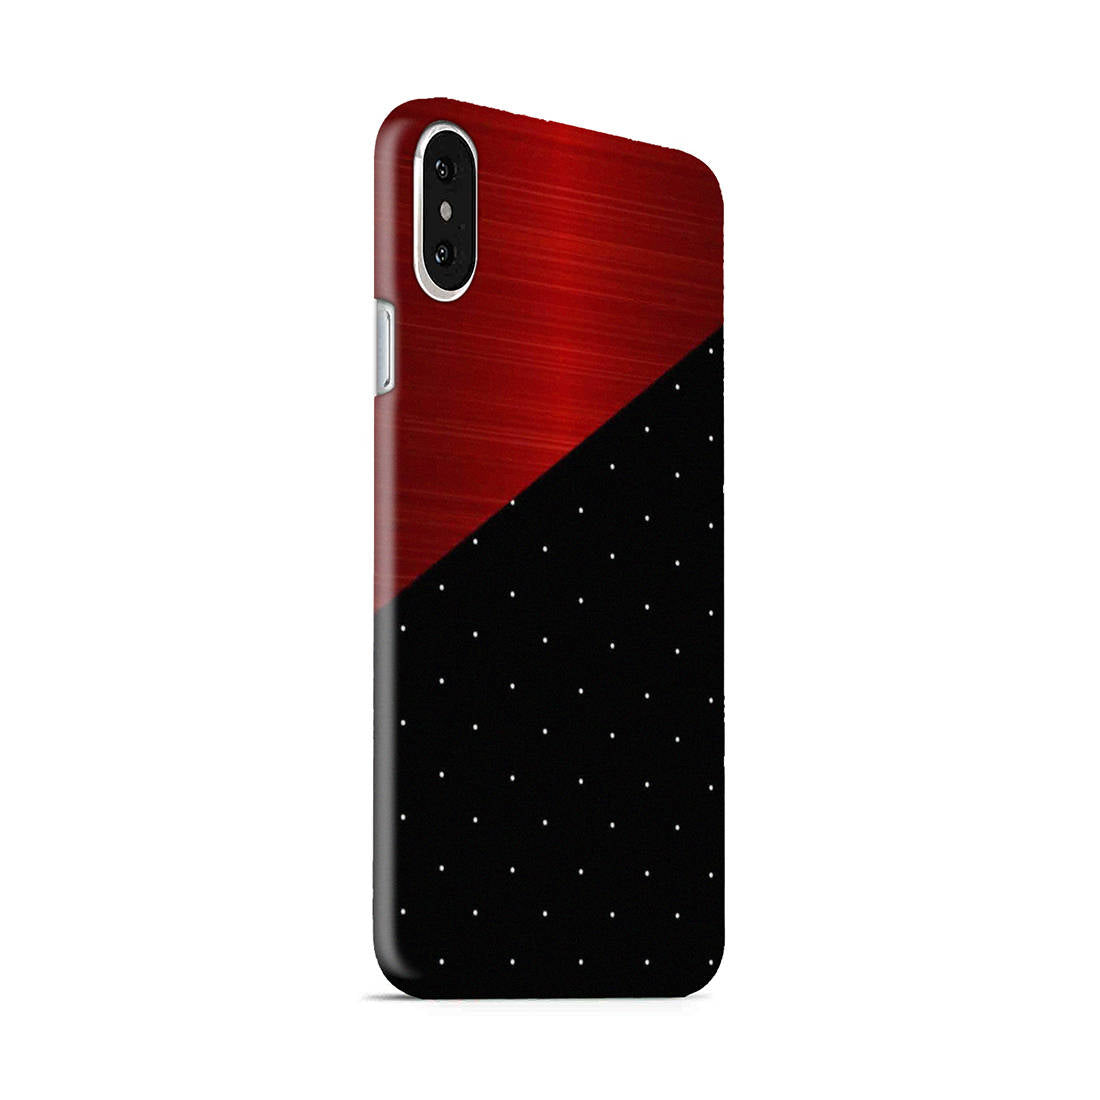 Polka Dots On Wood iPhone X Mobile Cover Case - MADANYU